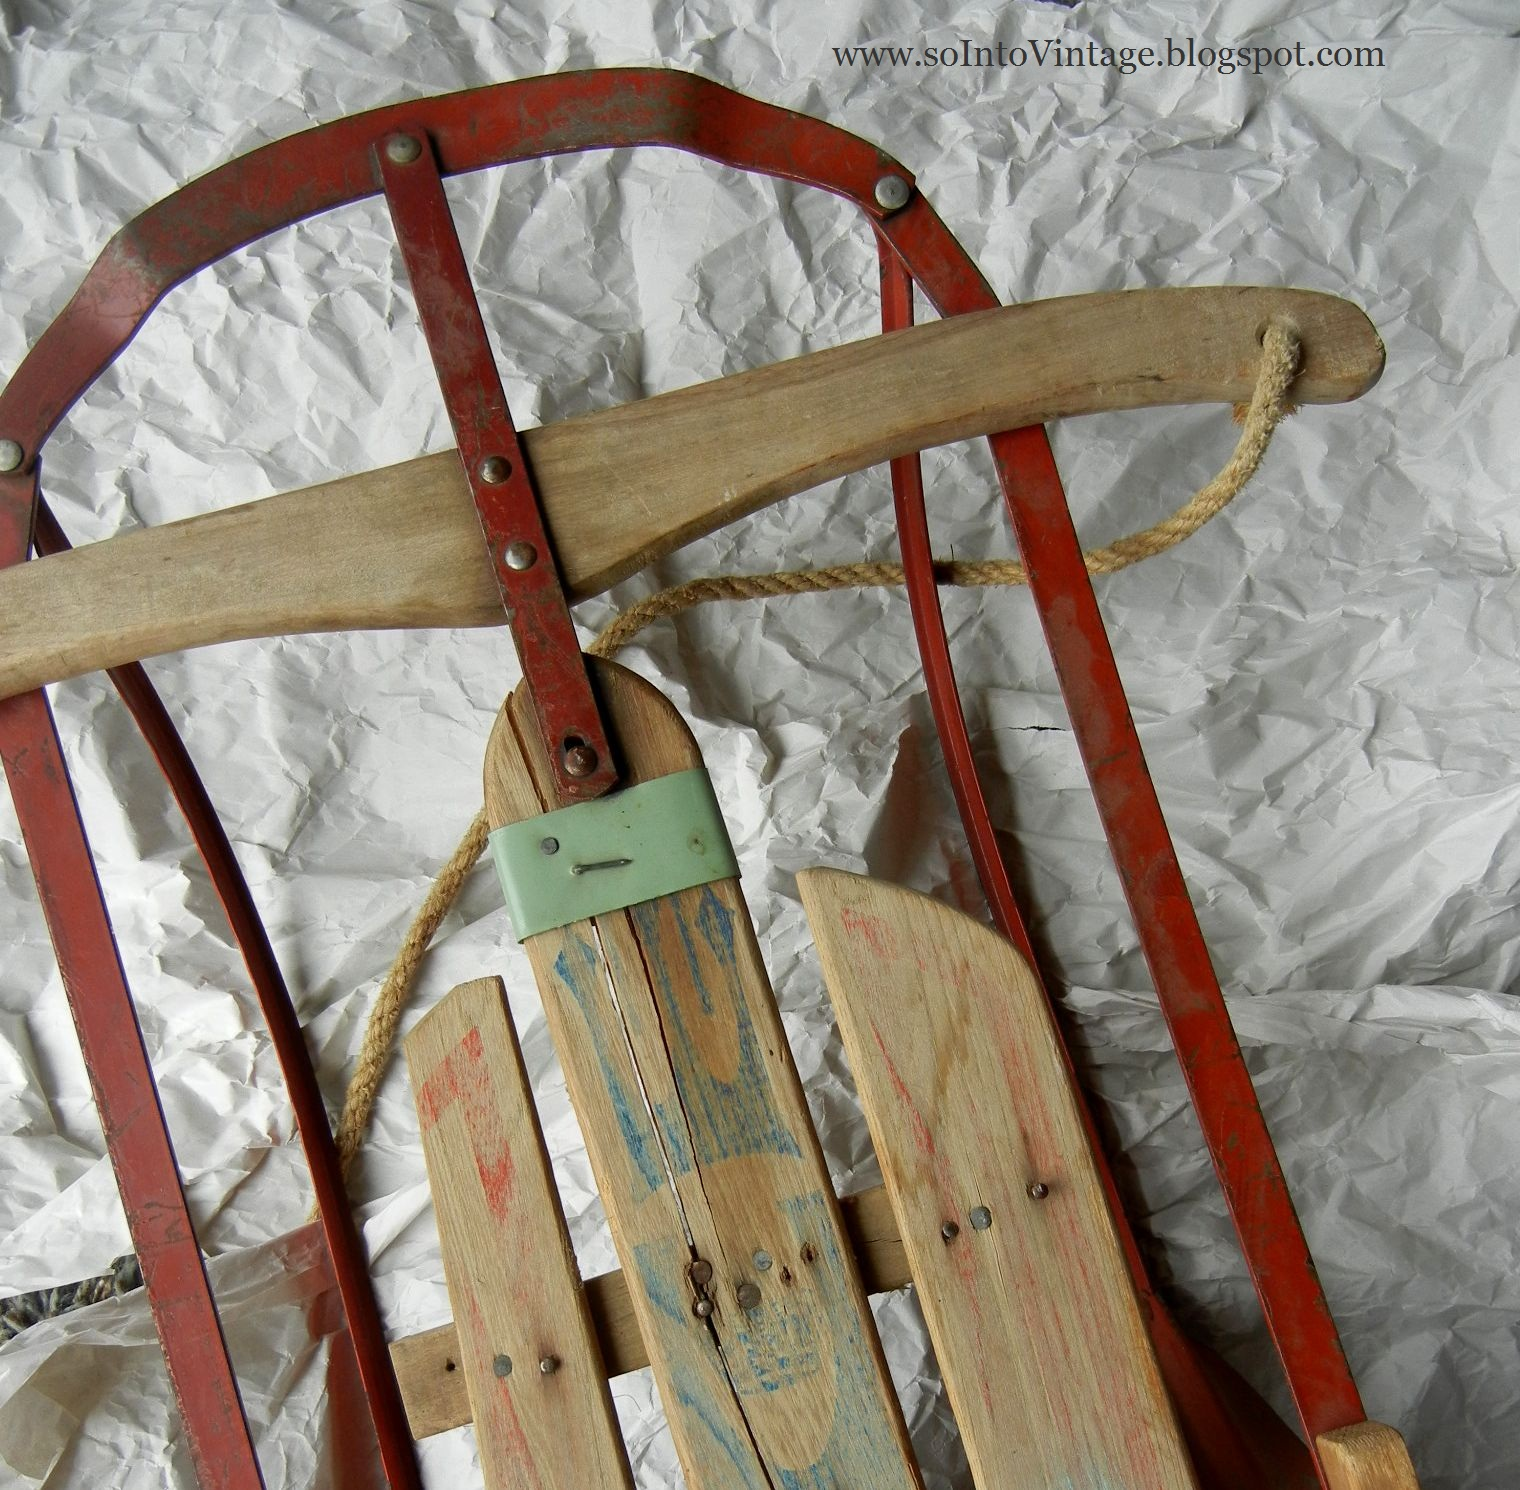 into vintage today 39 s sled brought to you by the color aqua